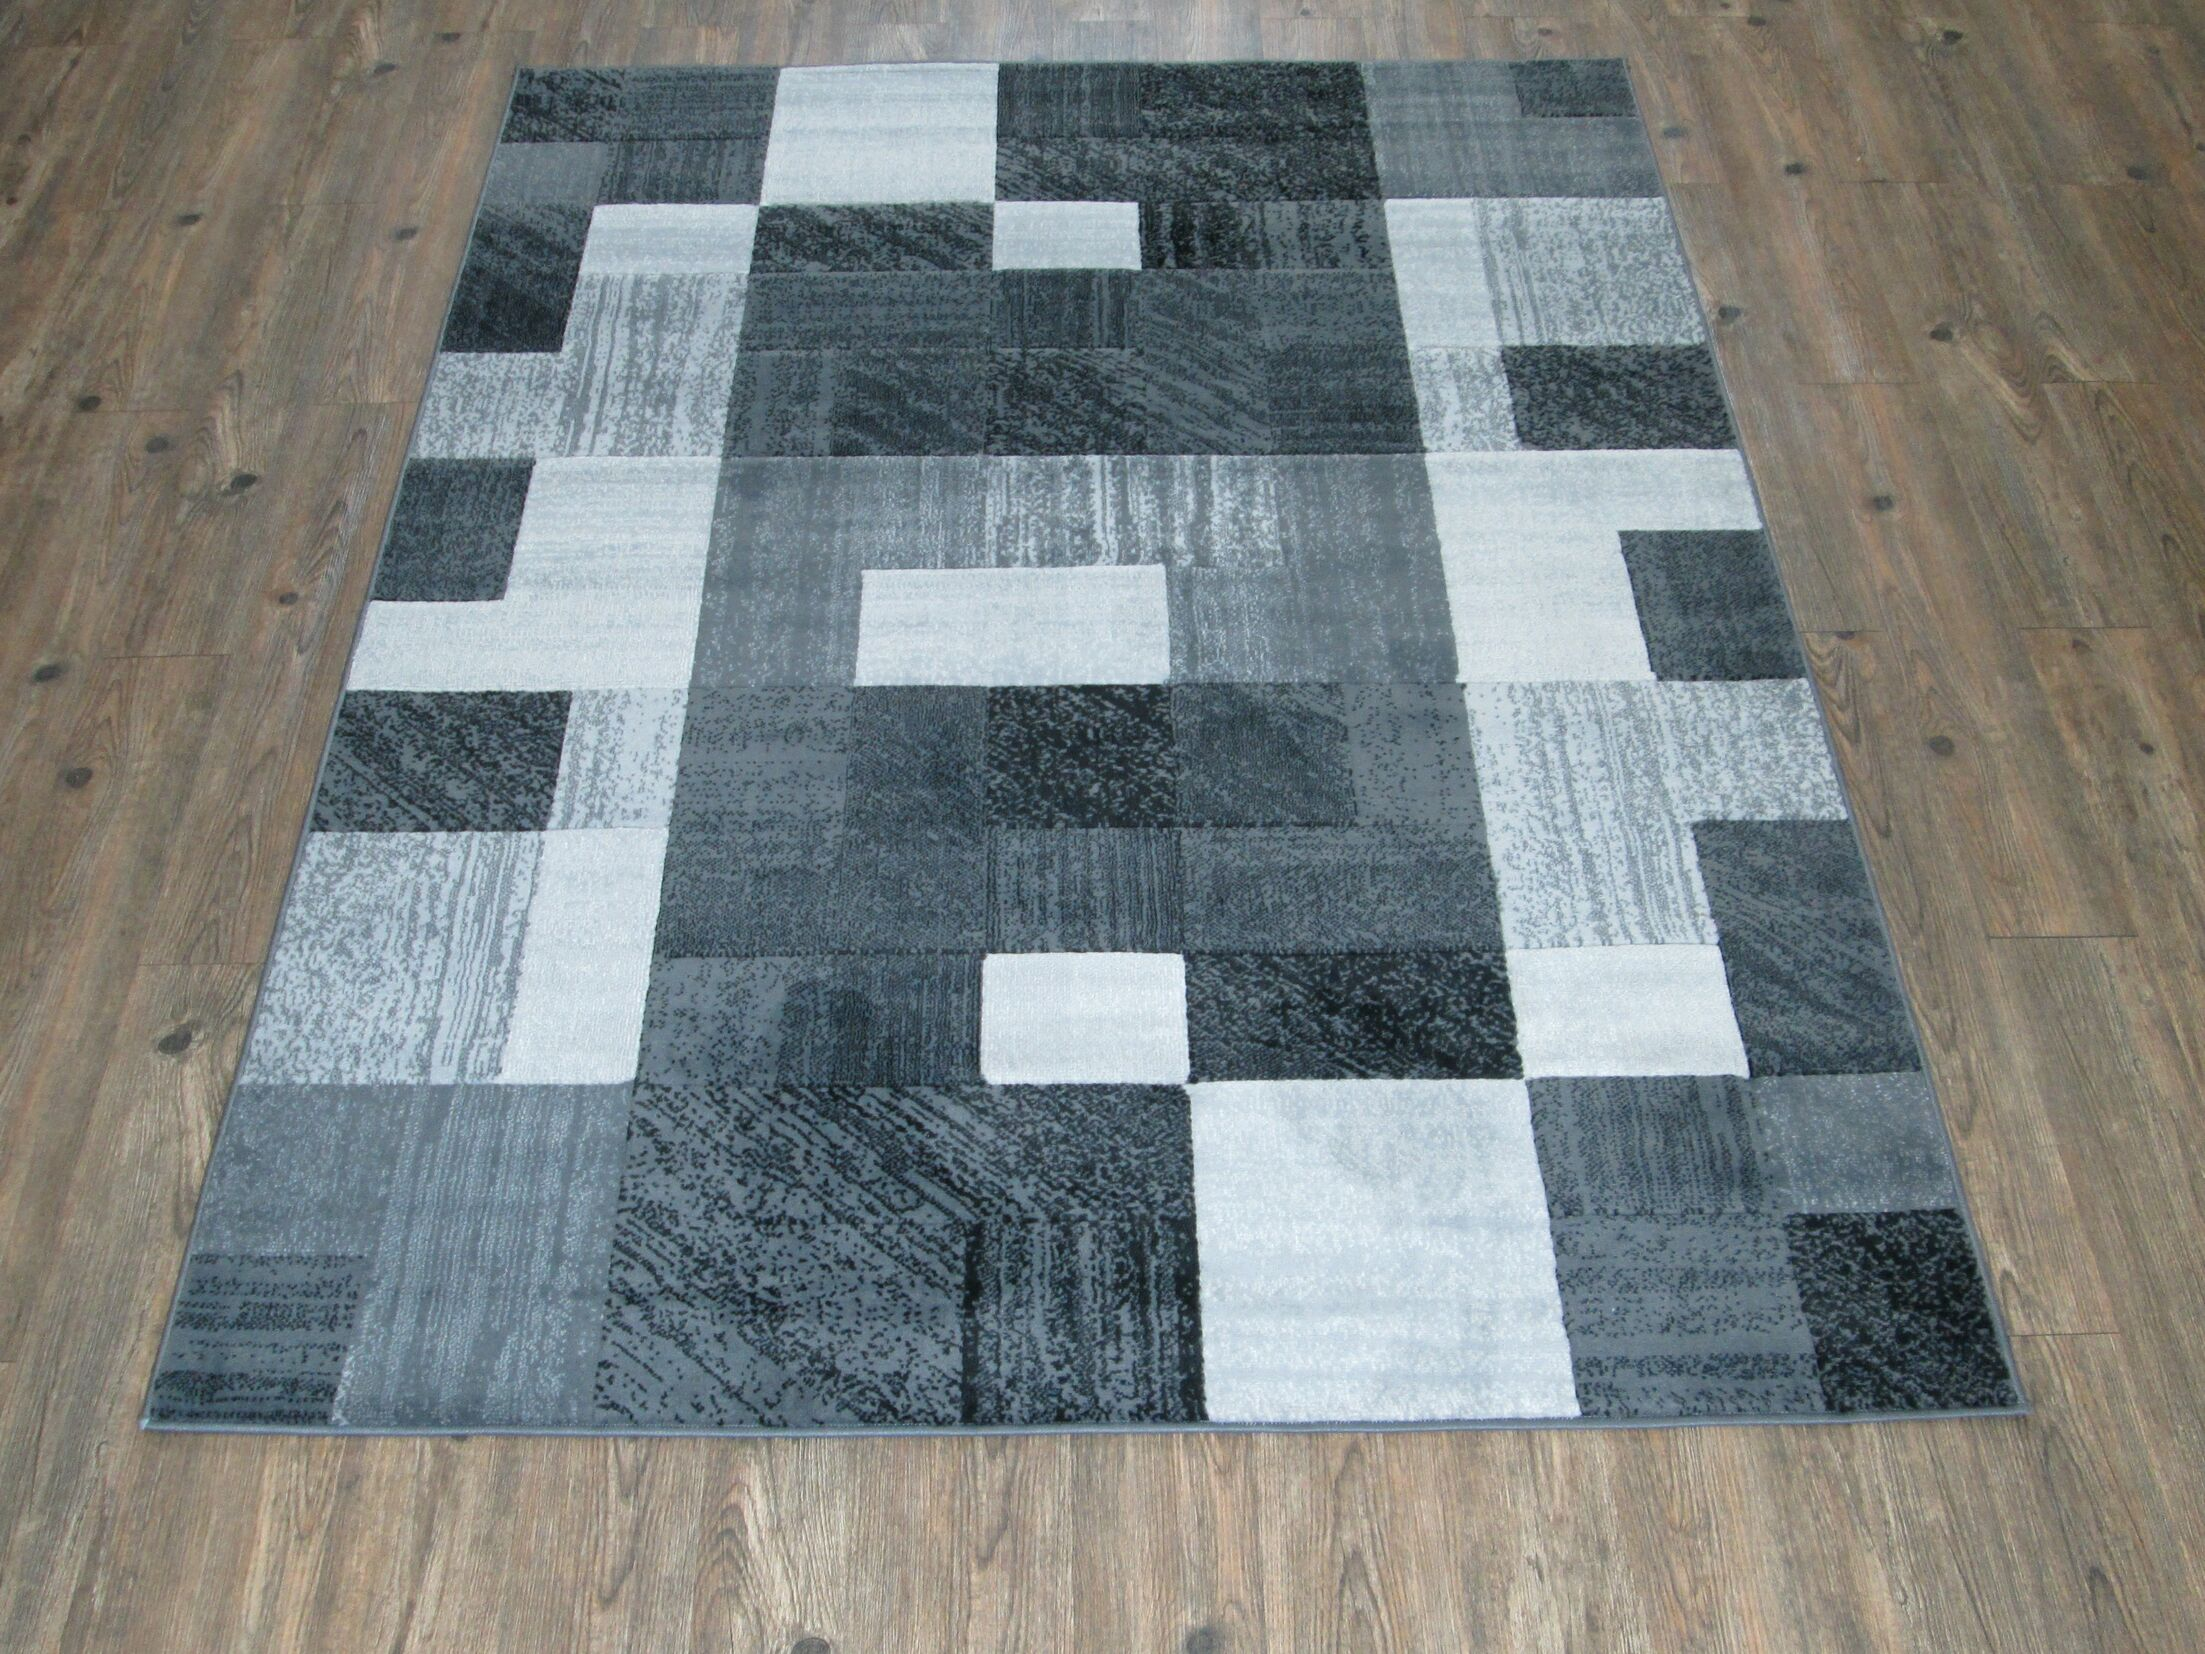 Jack Gray/Black Area Rug